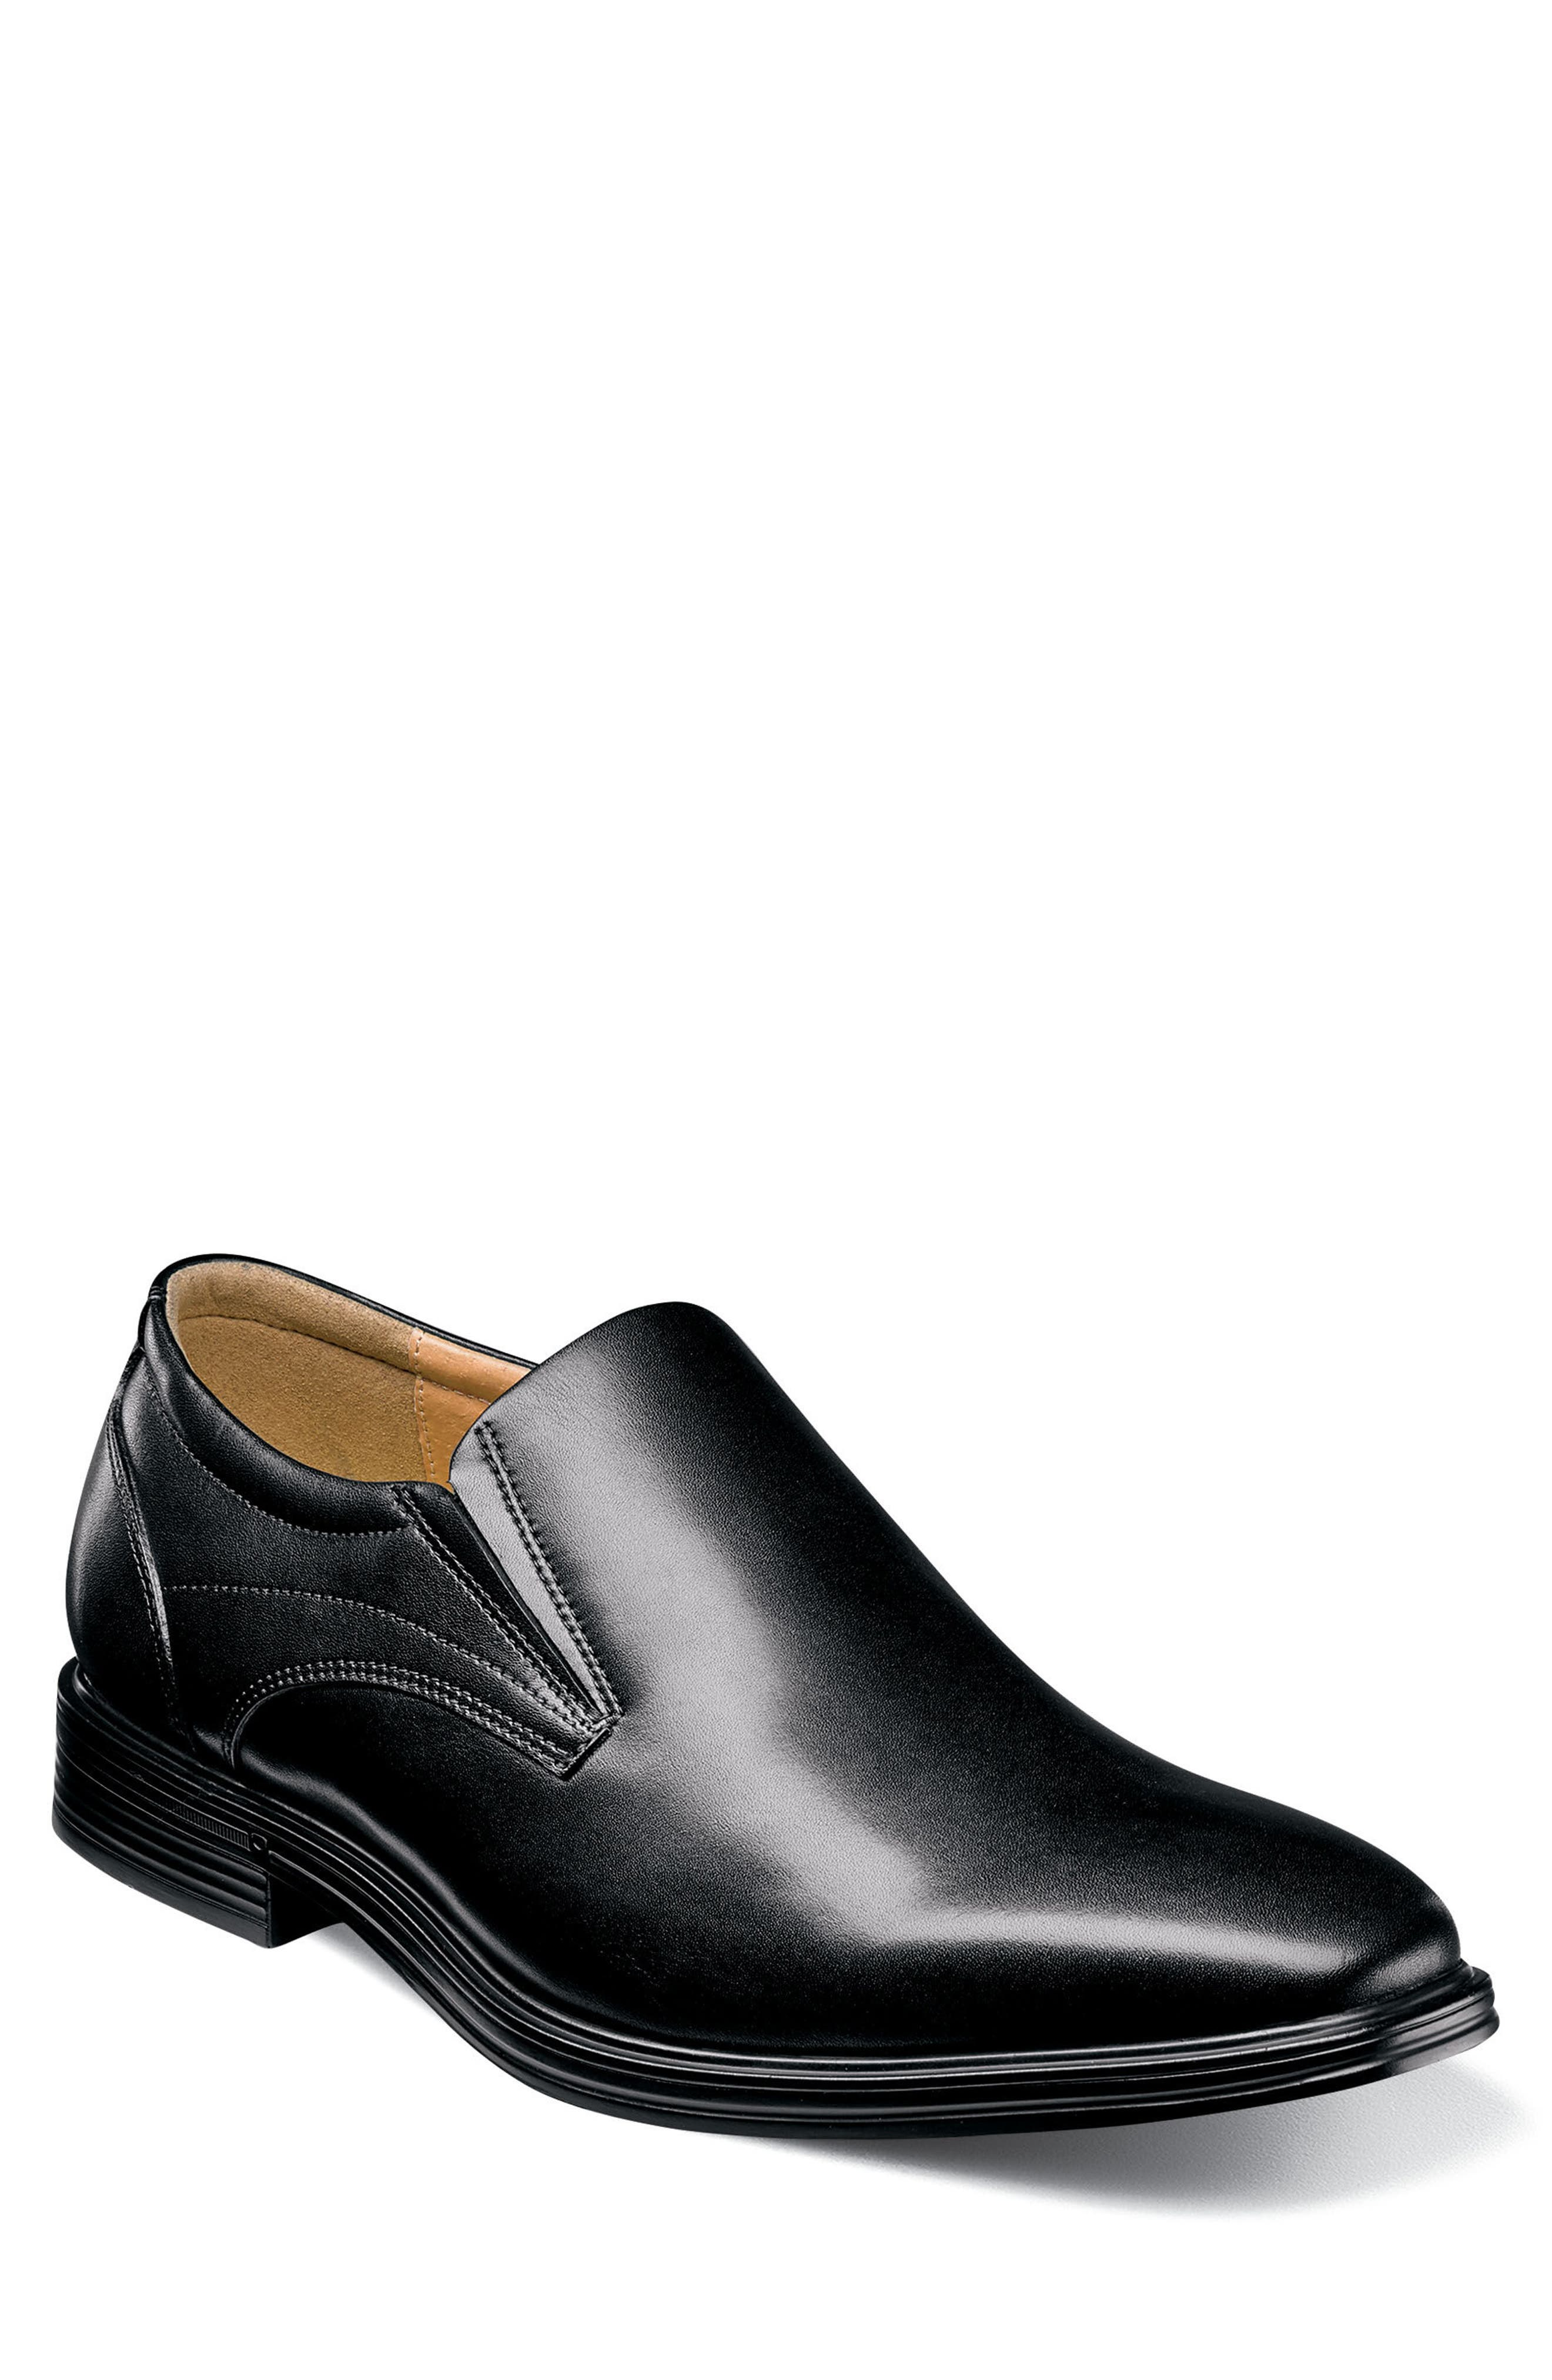 Heights Venetian Loafer,                             Main thumbnail 1, color,                             BLACK